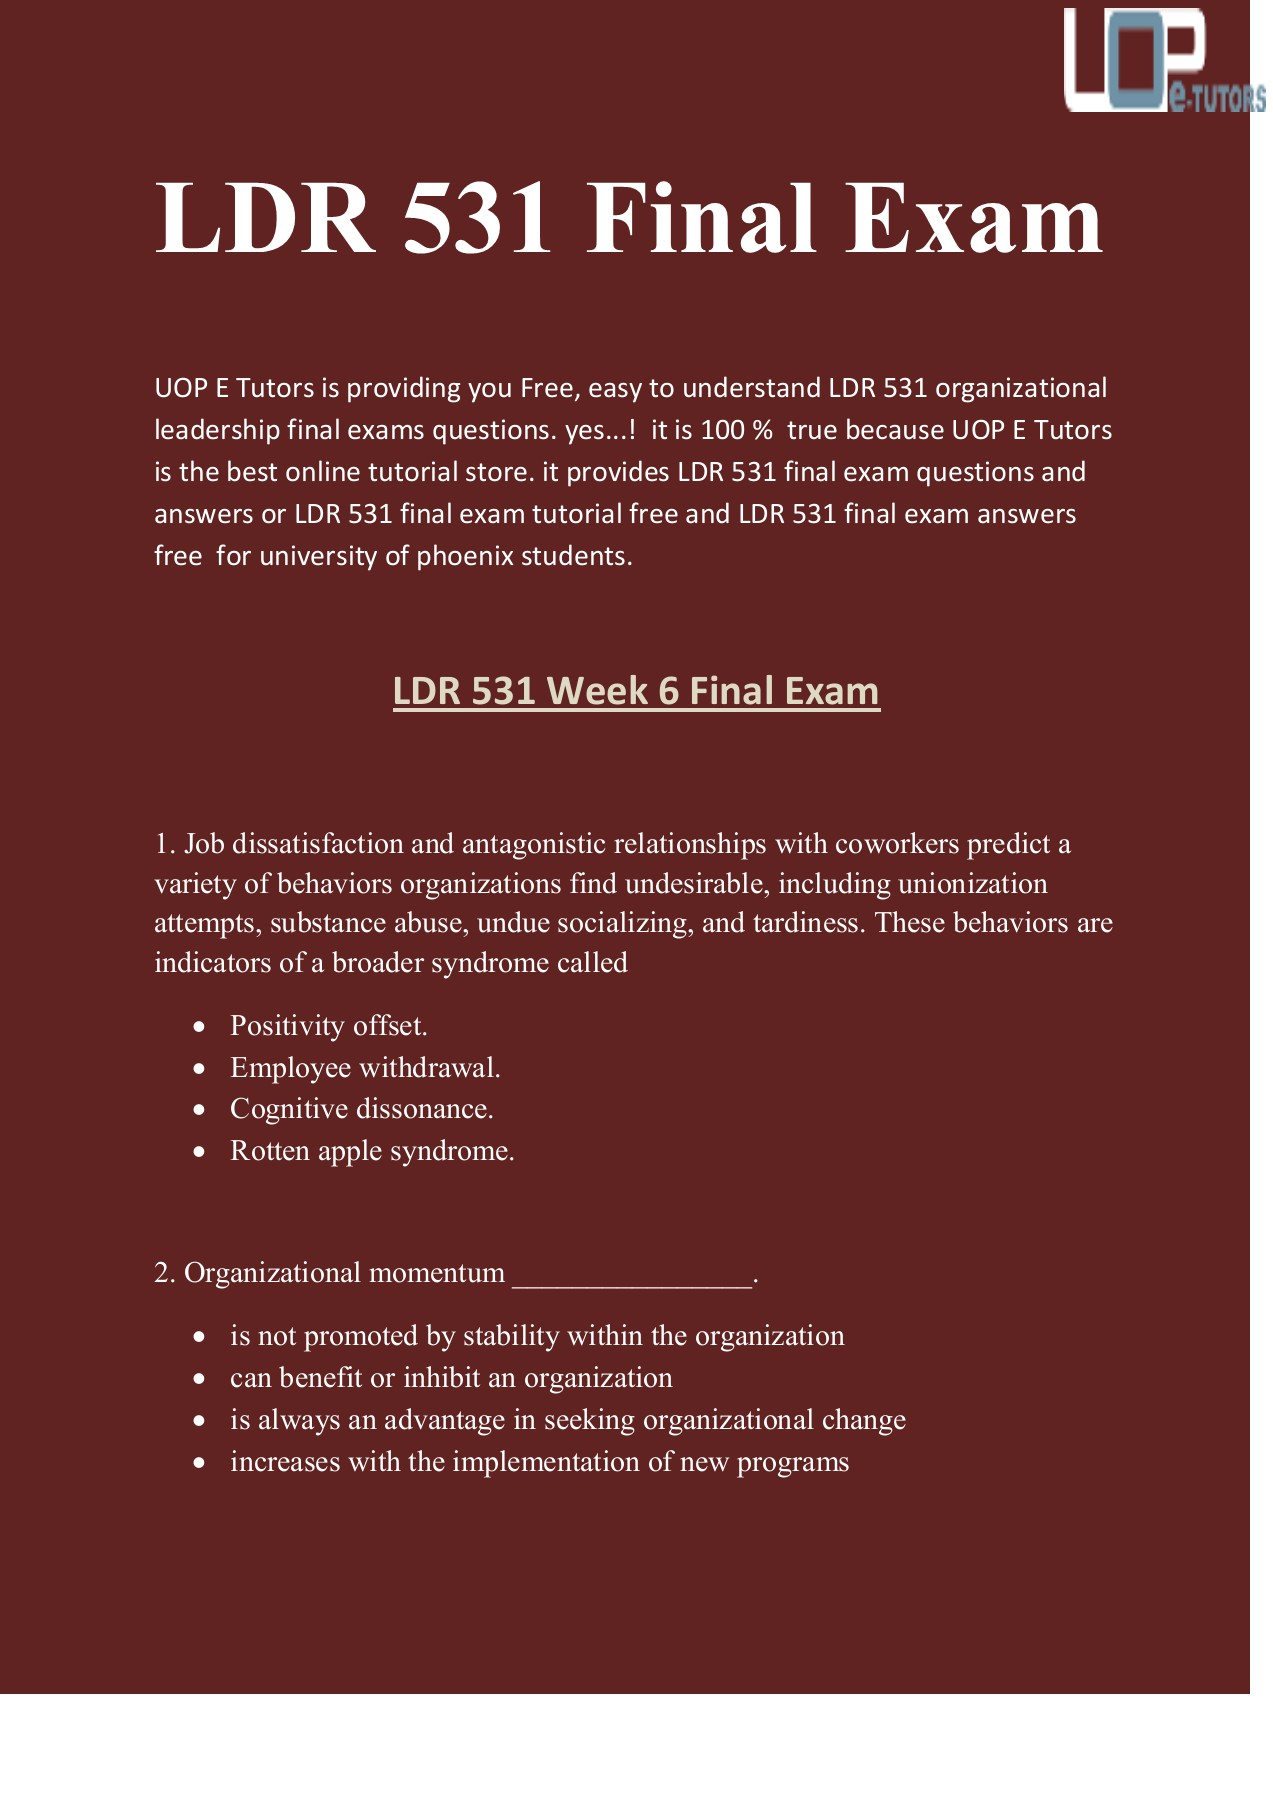 LDR 531 Final Exam Answers : LDR 531 Final Exam | UOP E Tutors